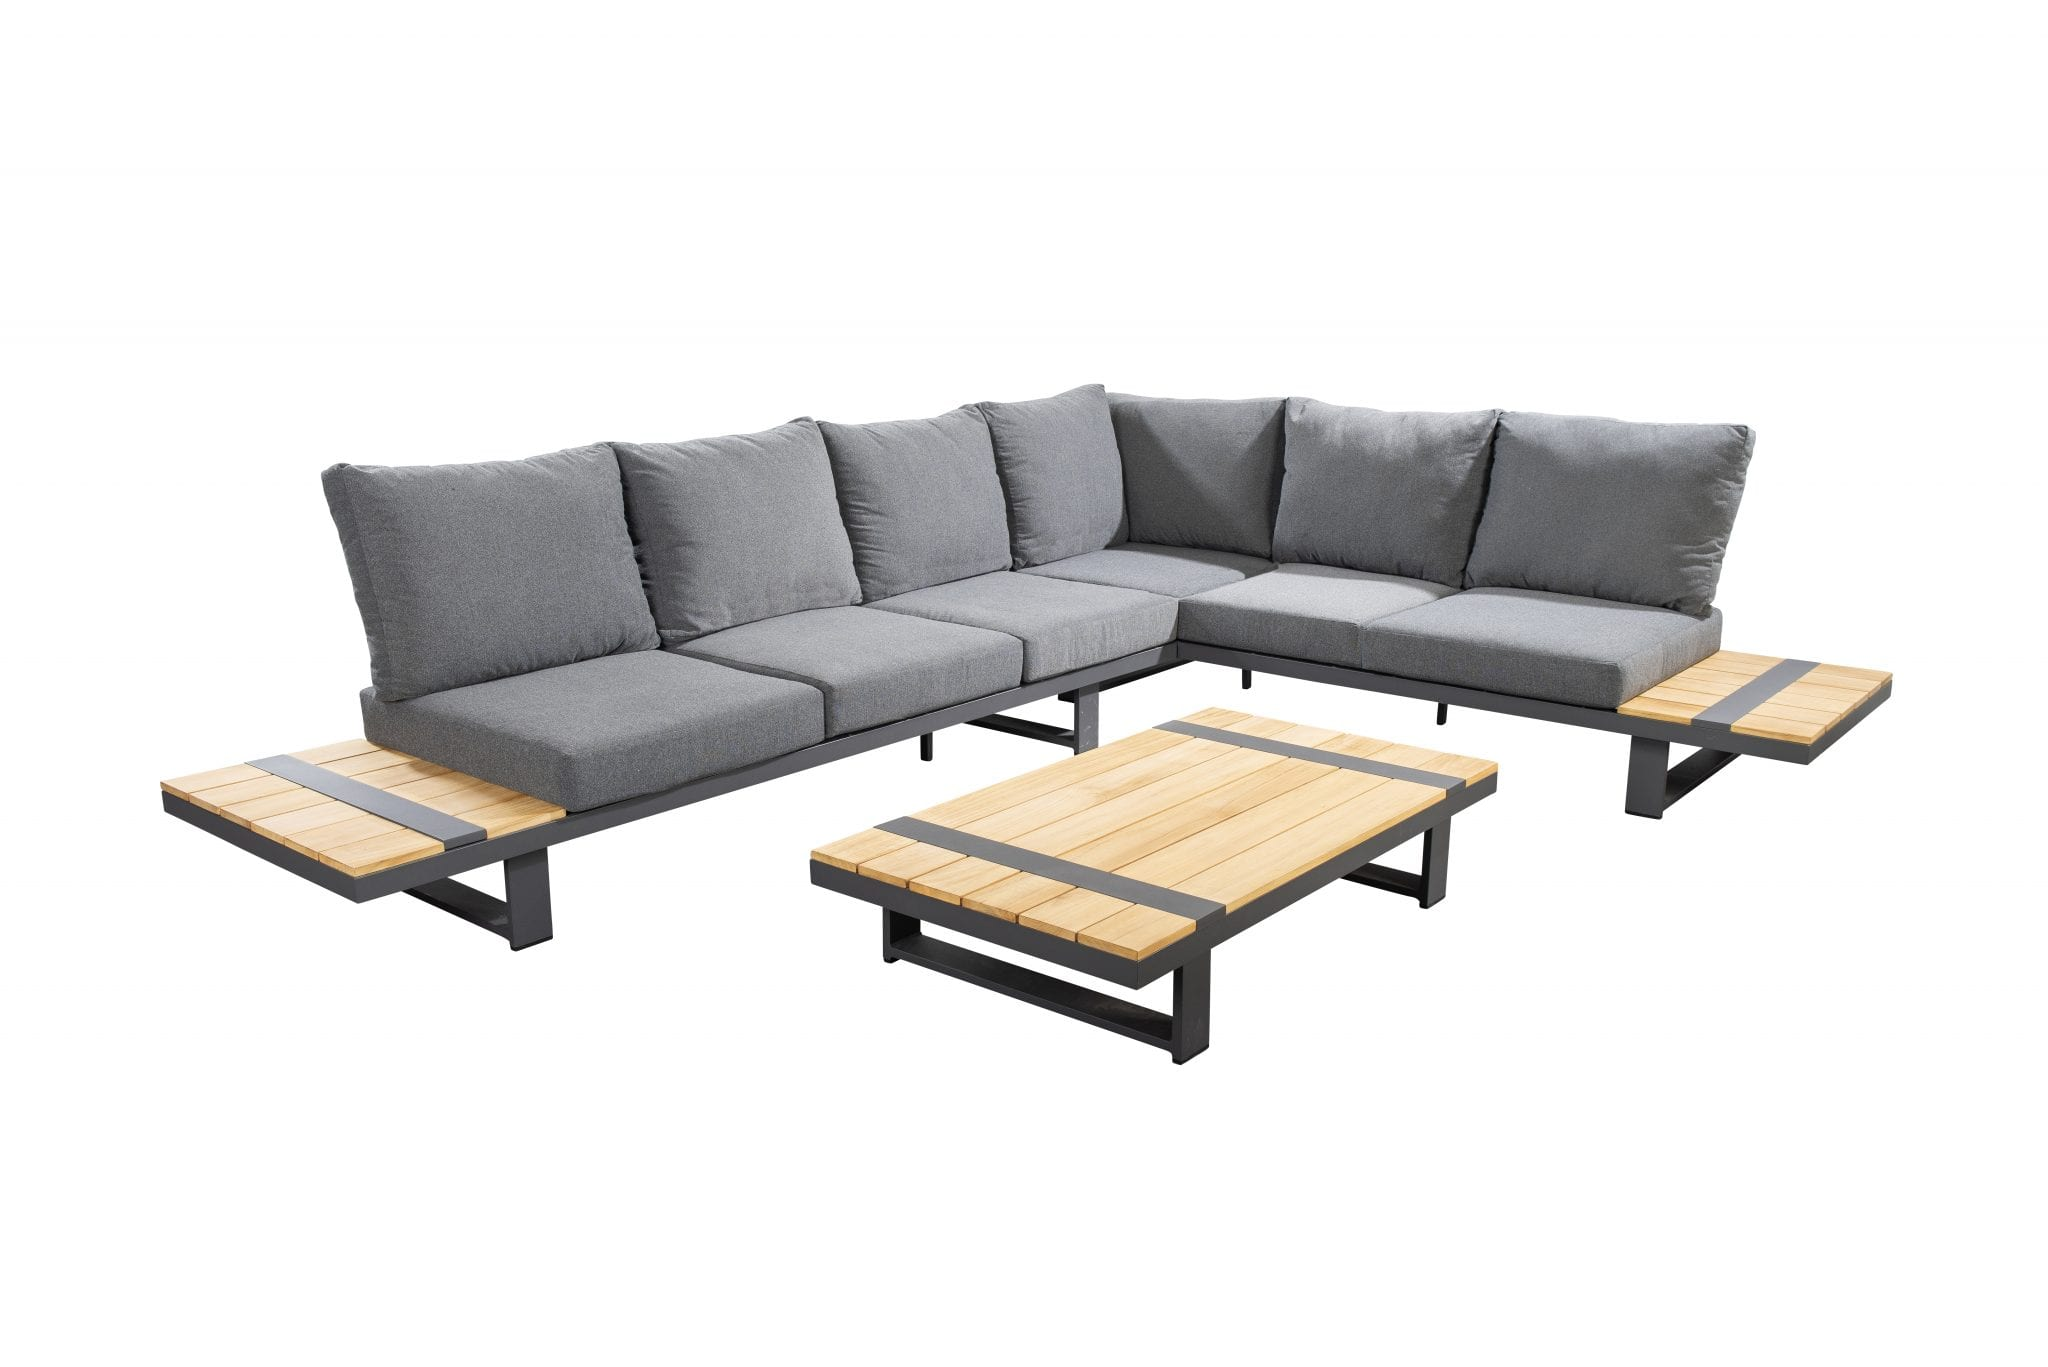 Yuwaa corner set - dark grey | Yoi Furniture